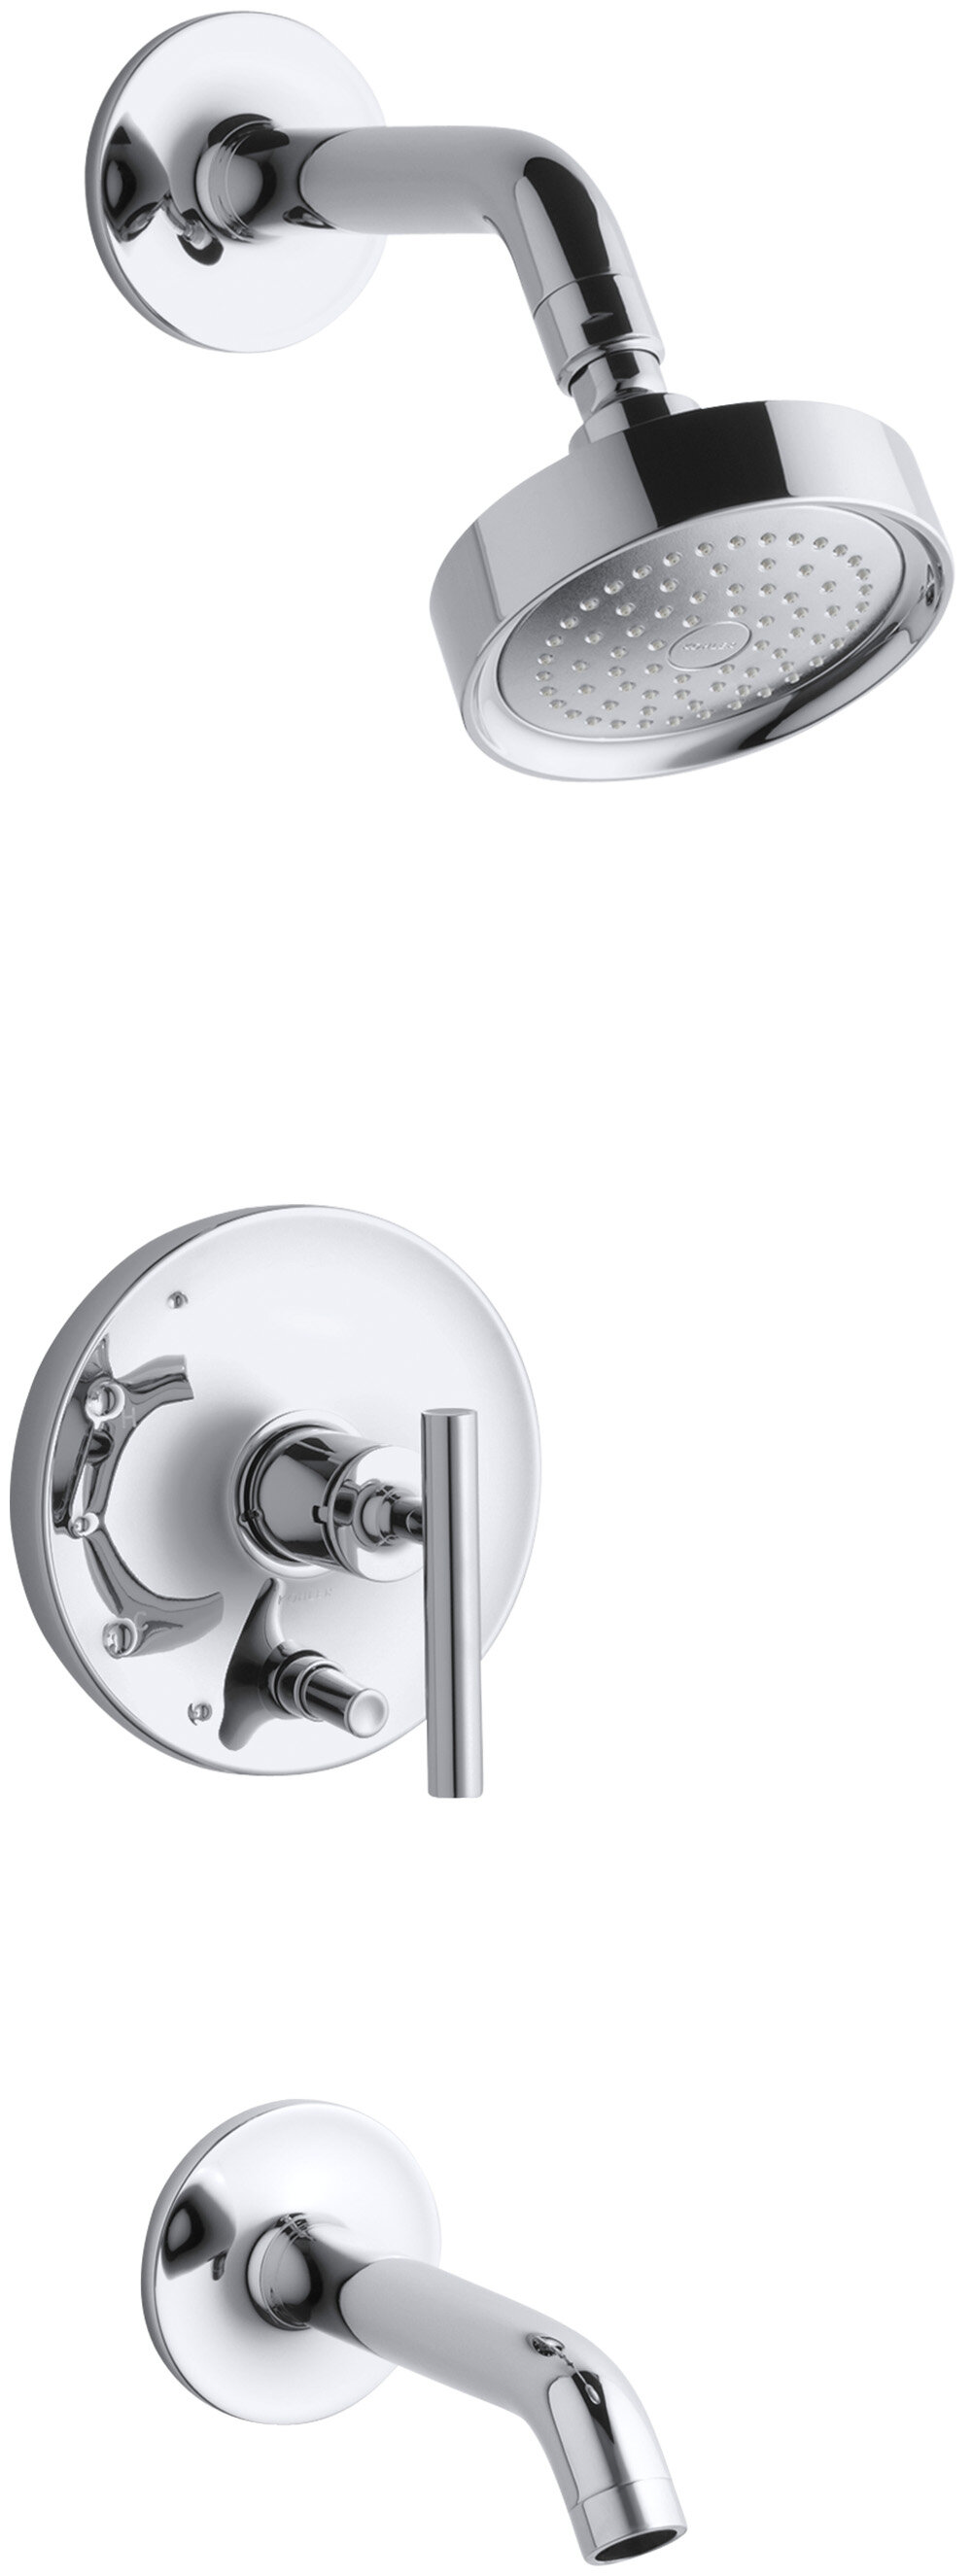 supplies detail diverter no faucets porcelain english faucet freestanding shower tub brushed telephone handles lever nickel valves